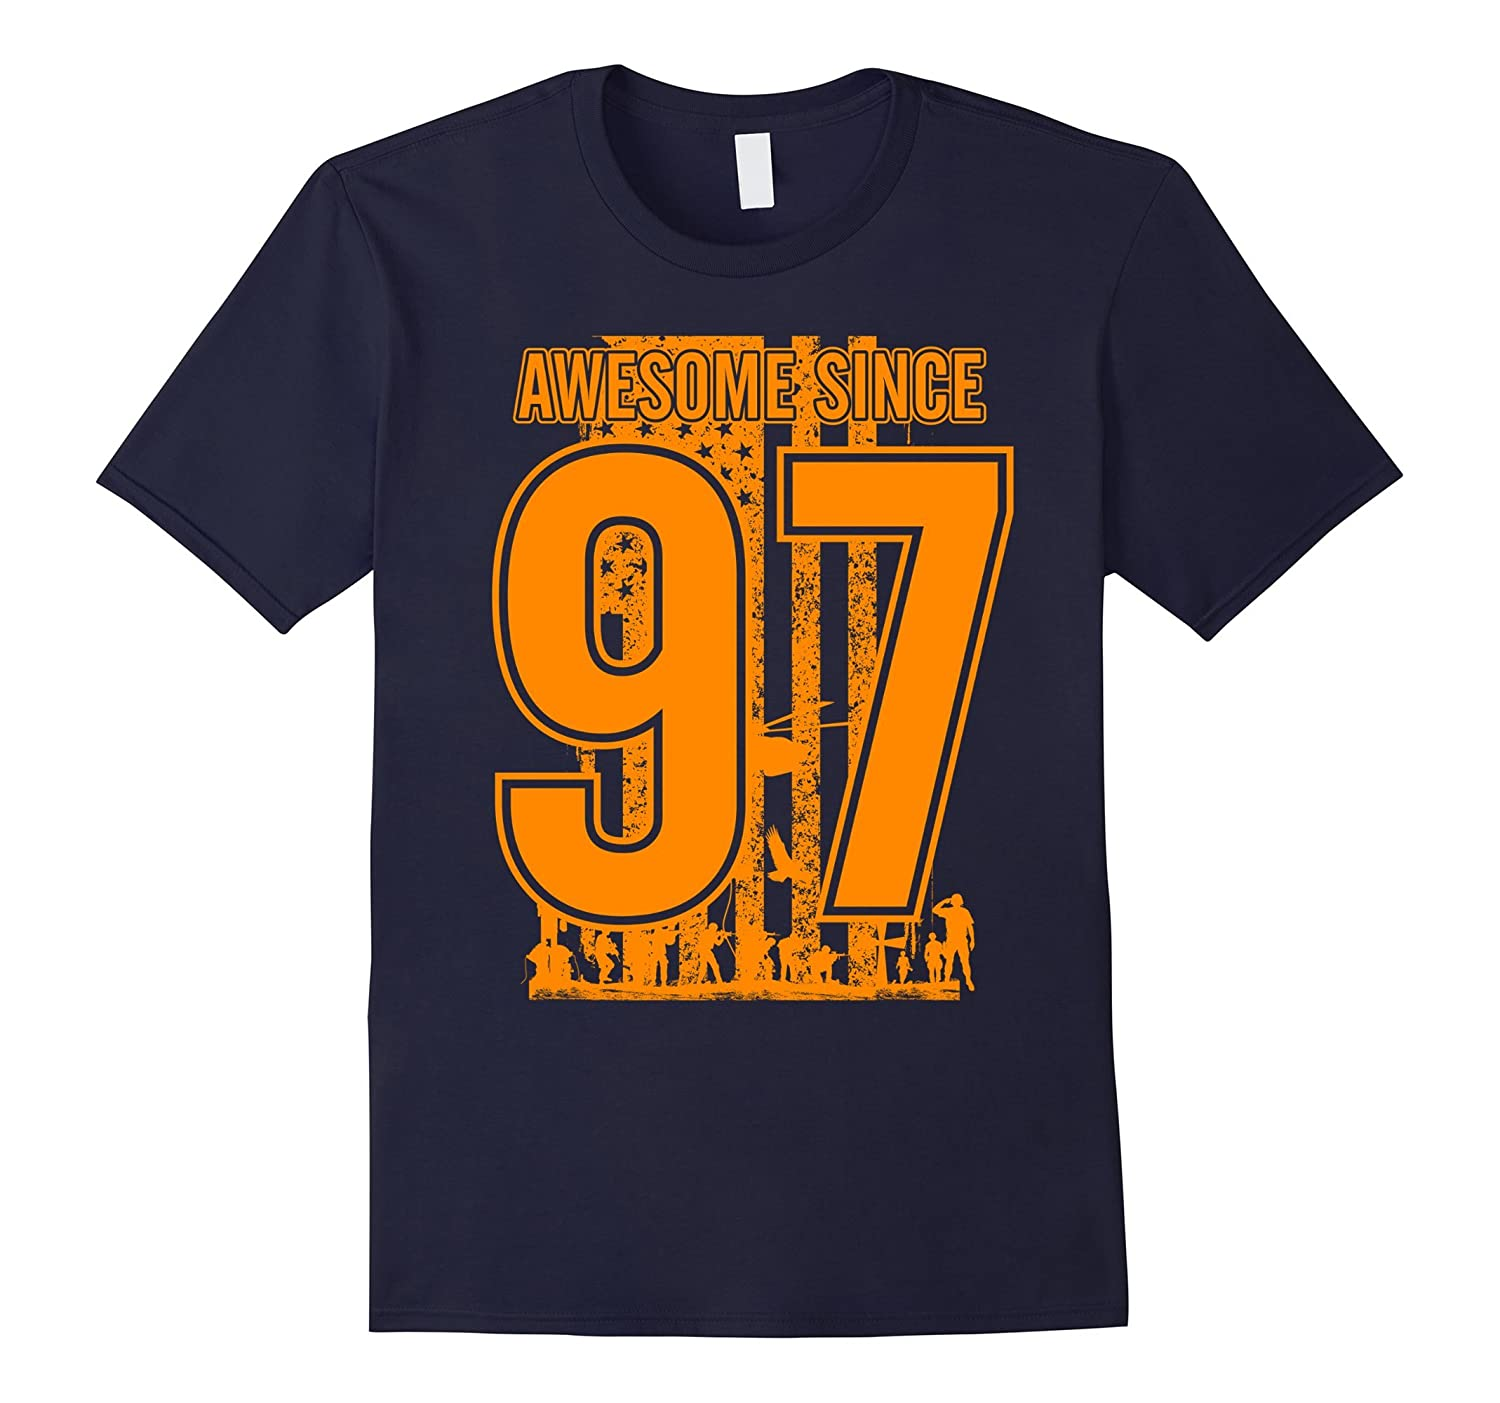 97 Awesome are born made in 1997 20 th-PL